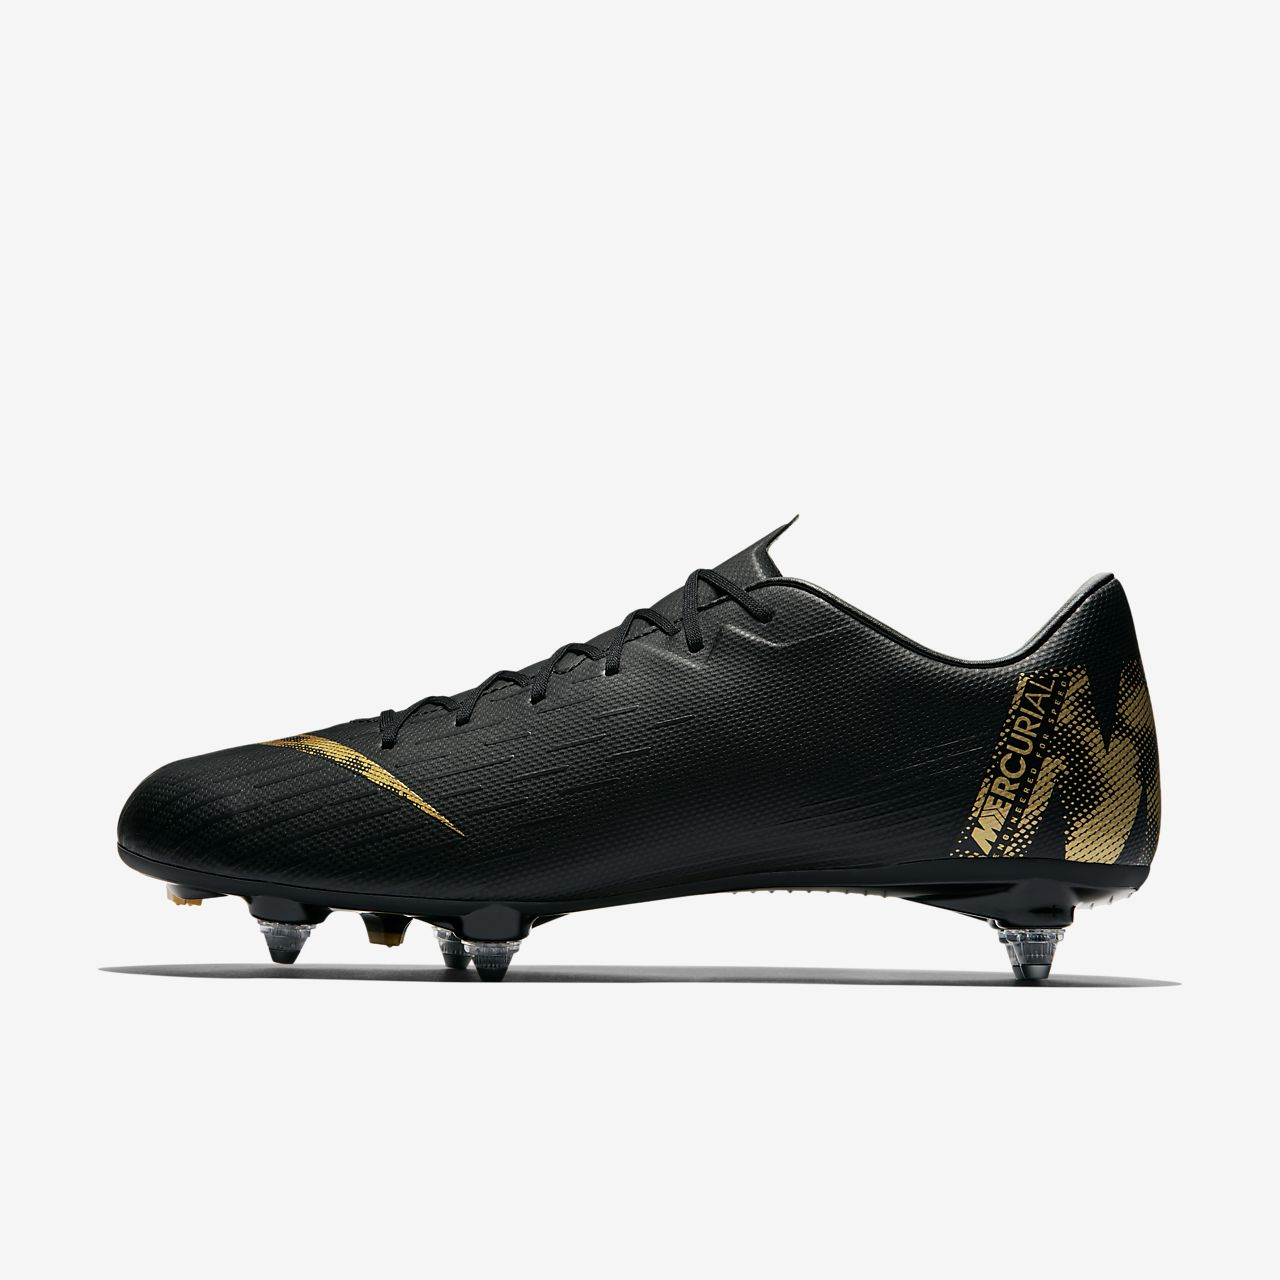 Nike Mercurial Vapor XII Academy SG-PRO Soft-Ground Football Boot